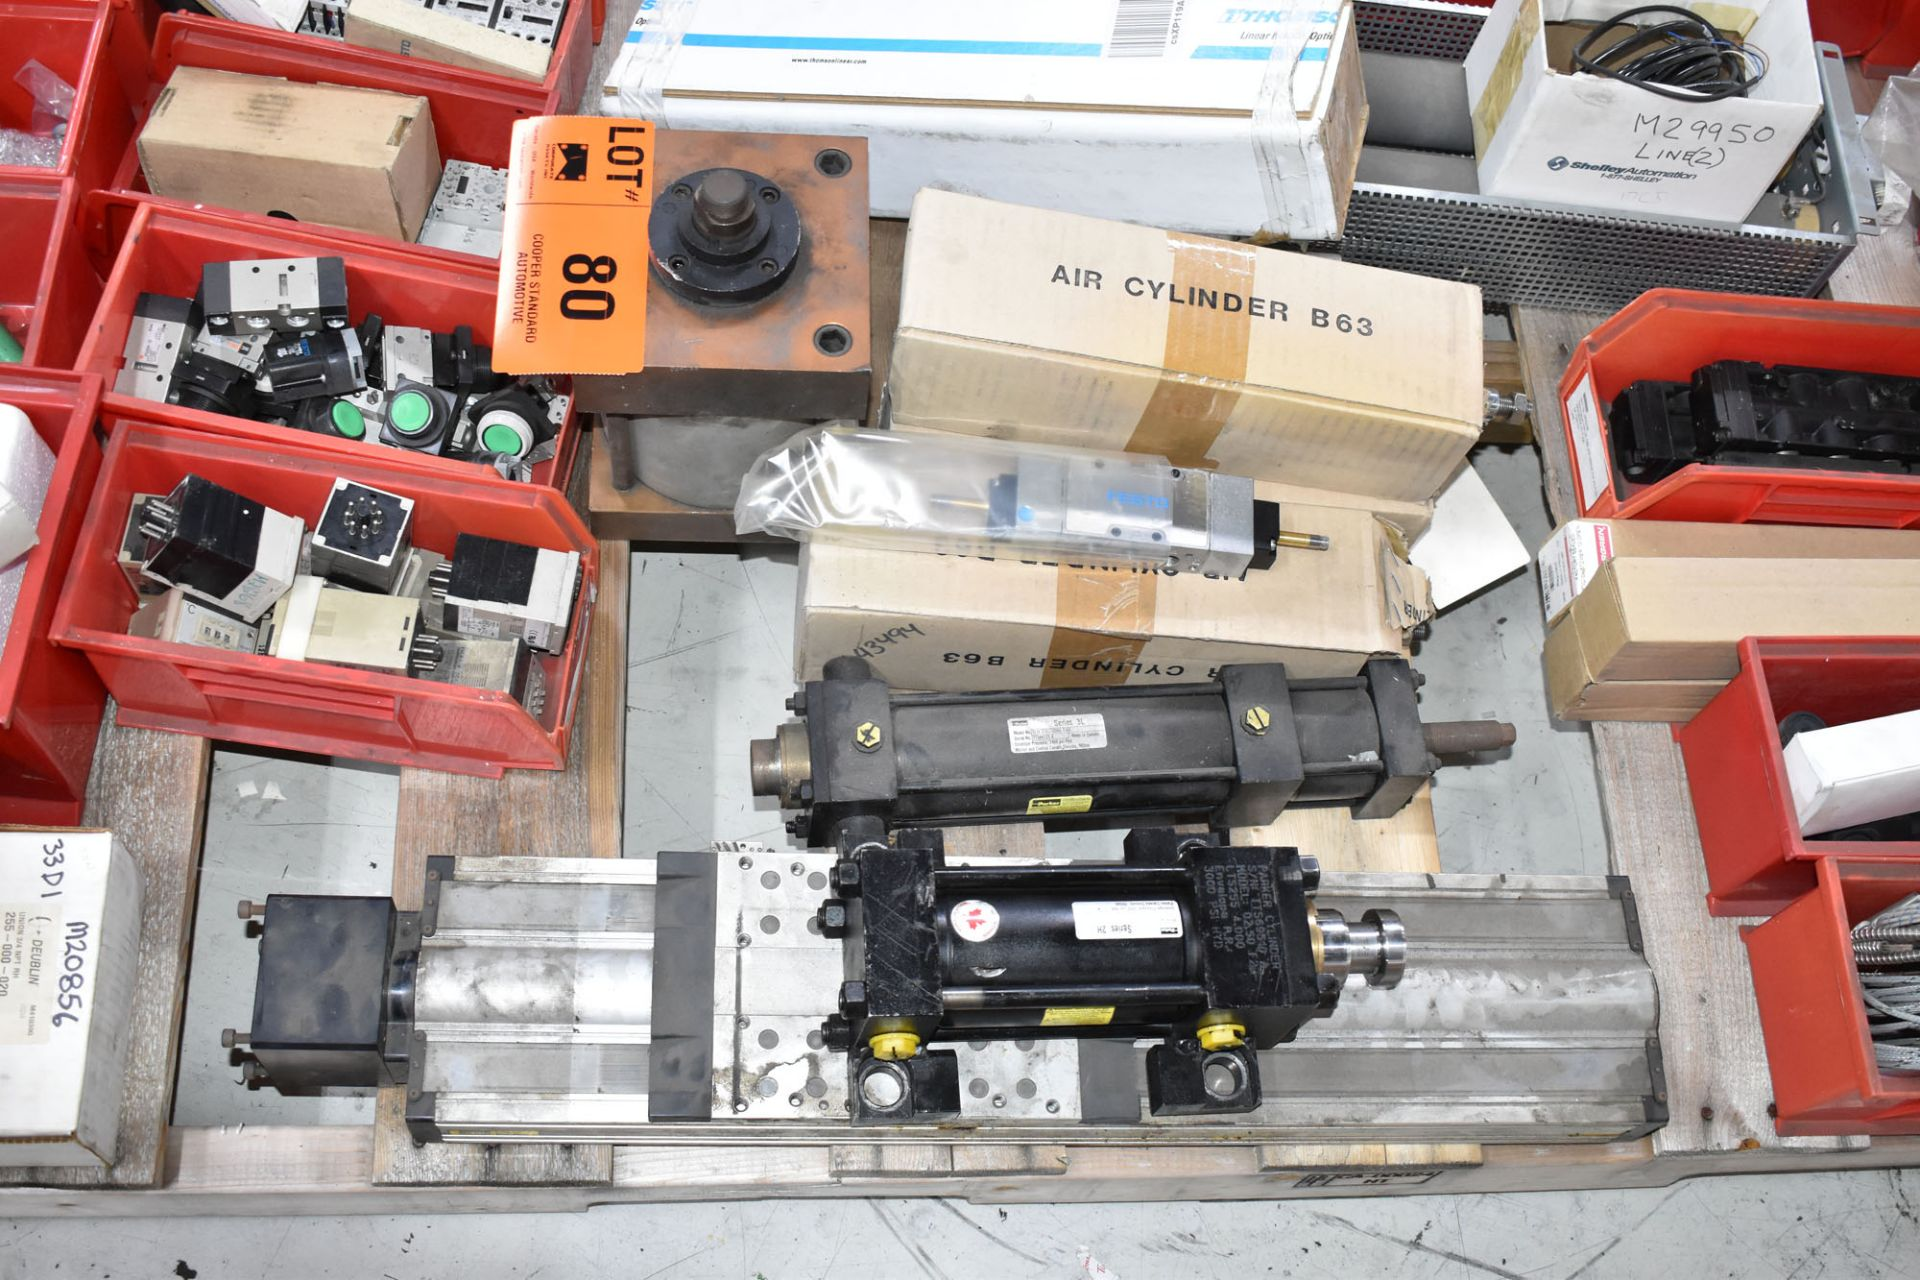 LOT/ PALLET WITH CONTENTS CONSISTING OF BEARINGS, CYLINDERS, AND EXTRUDER LINE COMPONENTS - Image 3 of 5